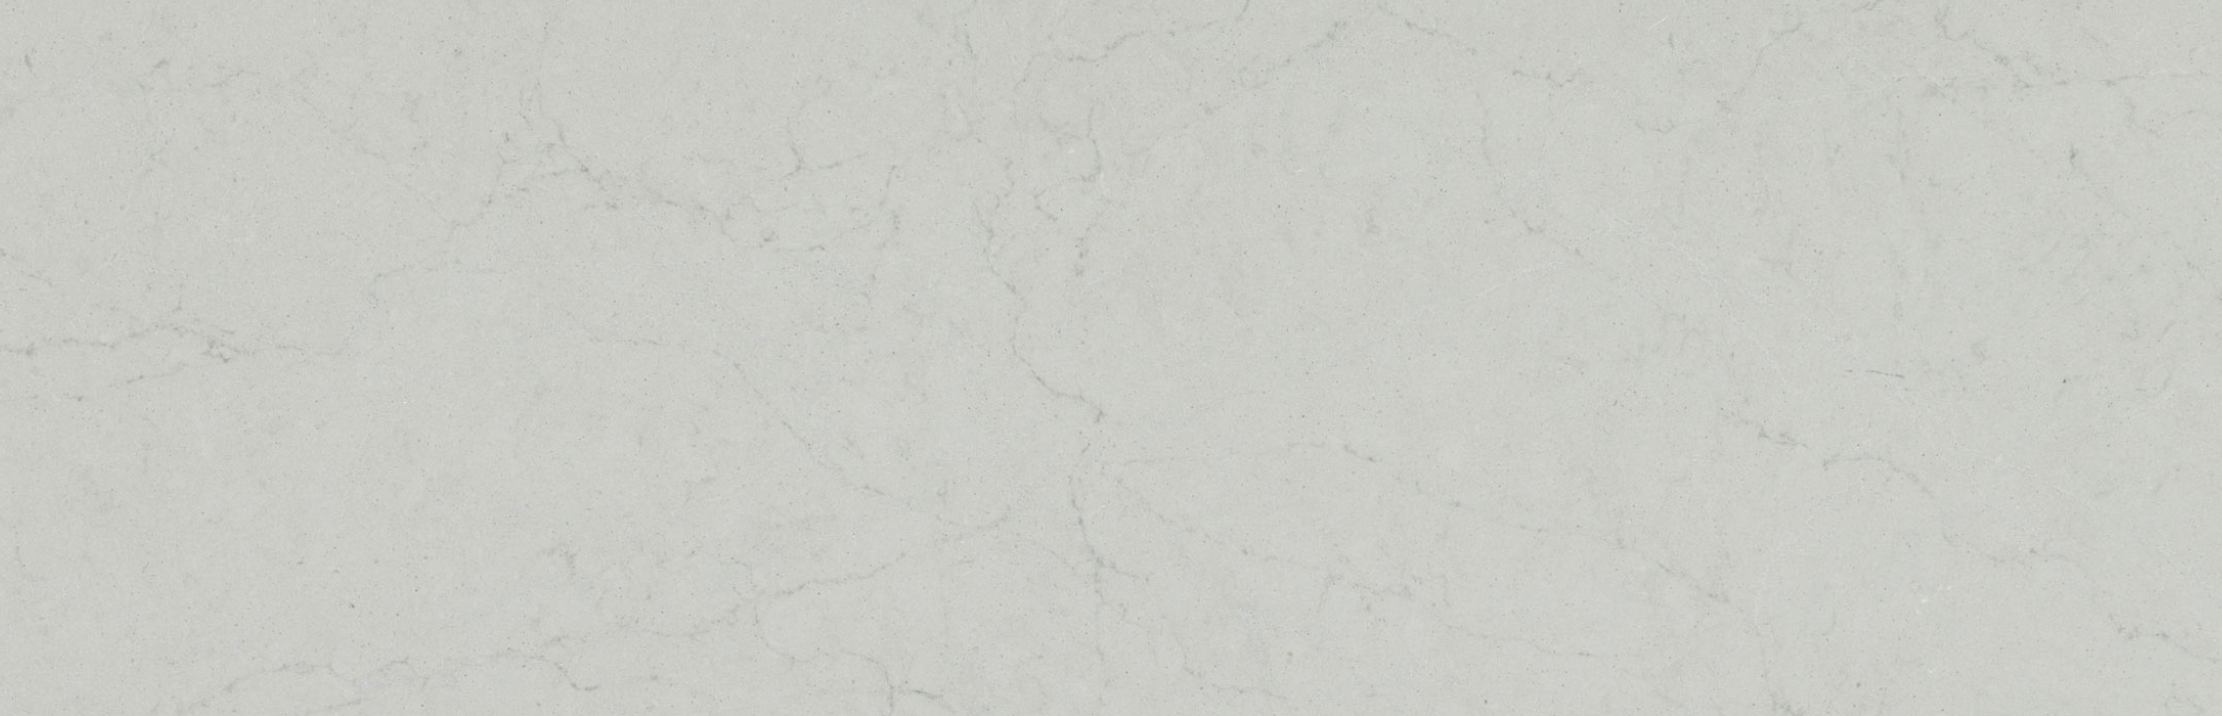 CAESARSTONE | GEORGIAN BLUFFS